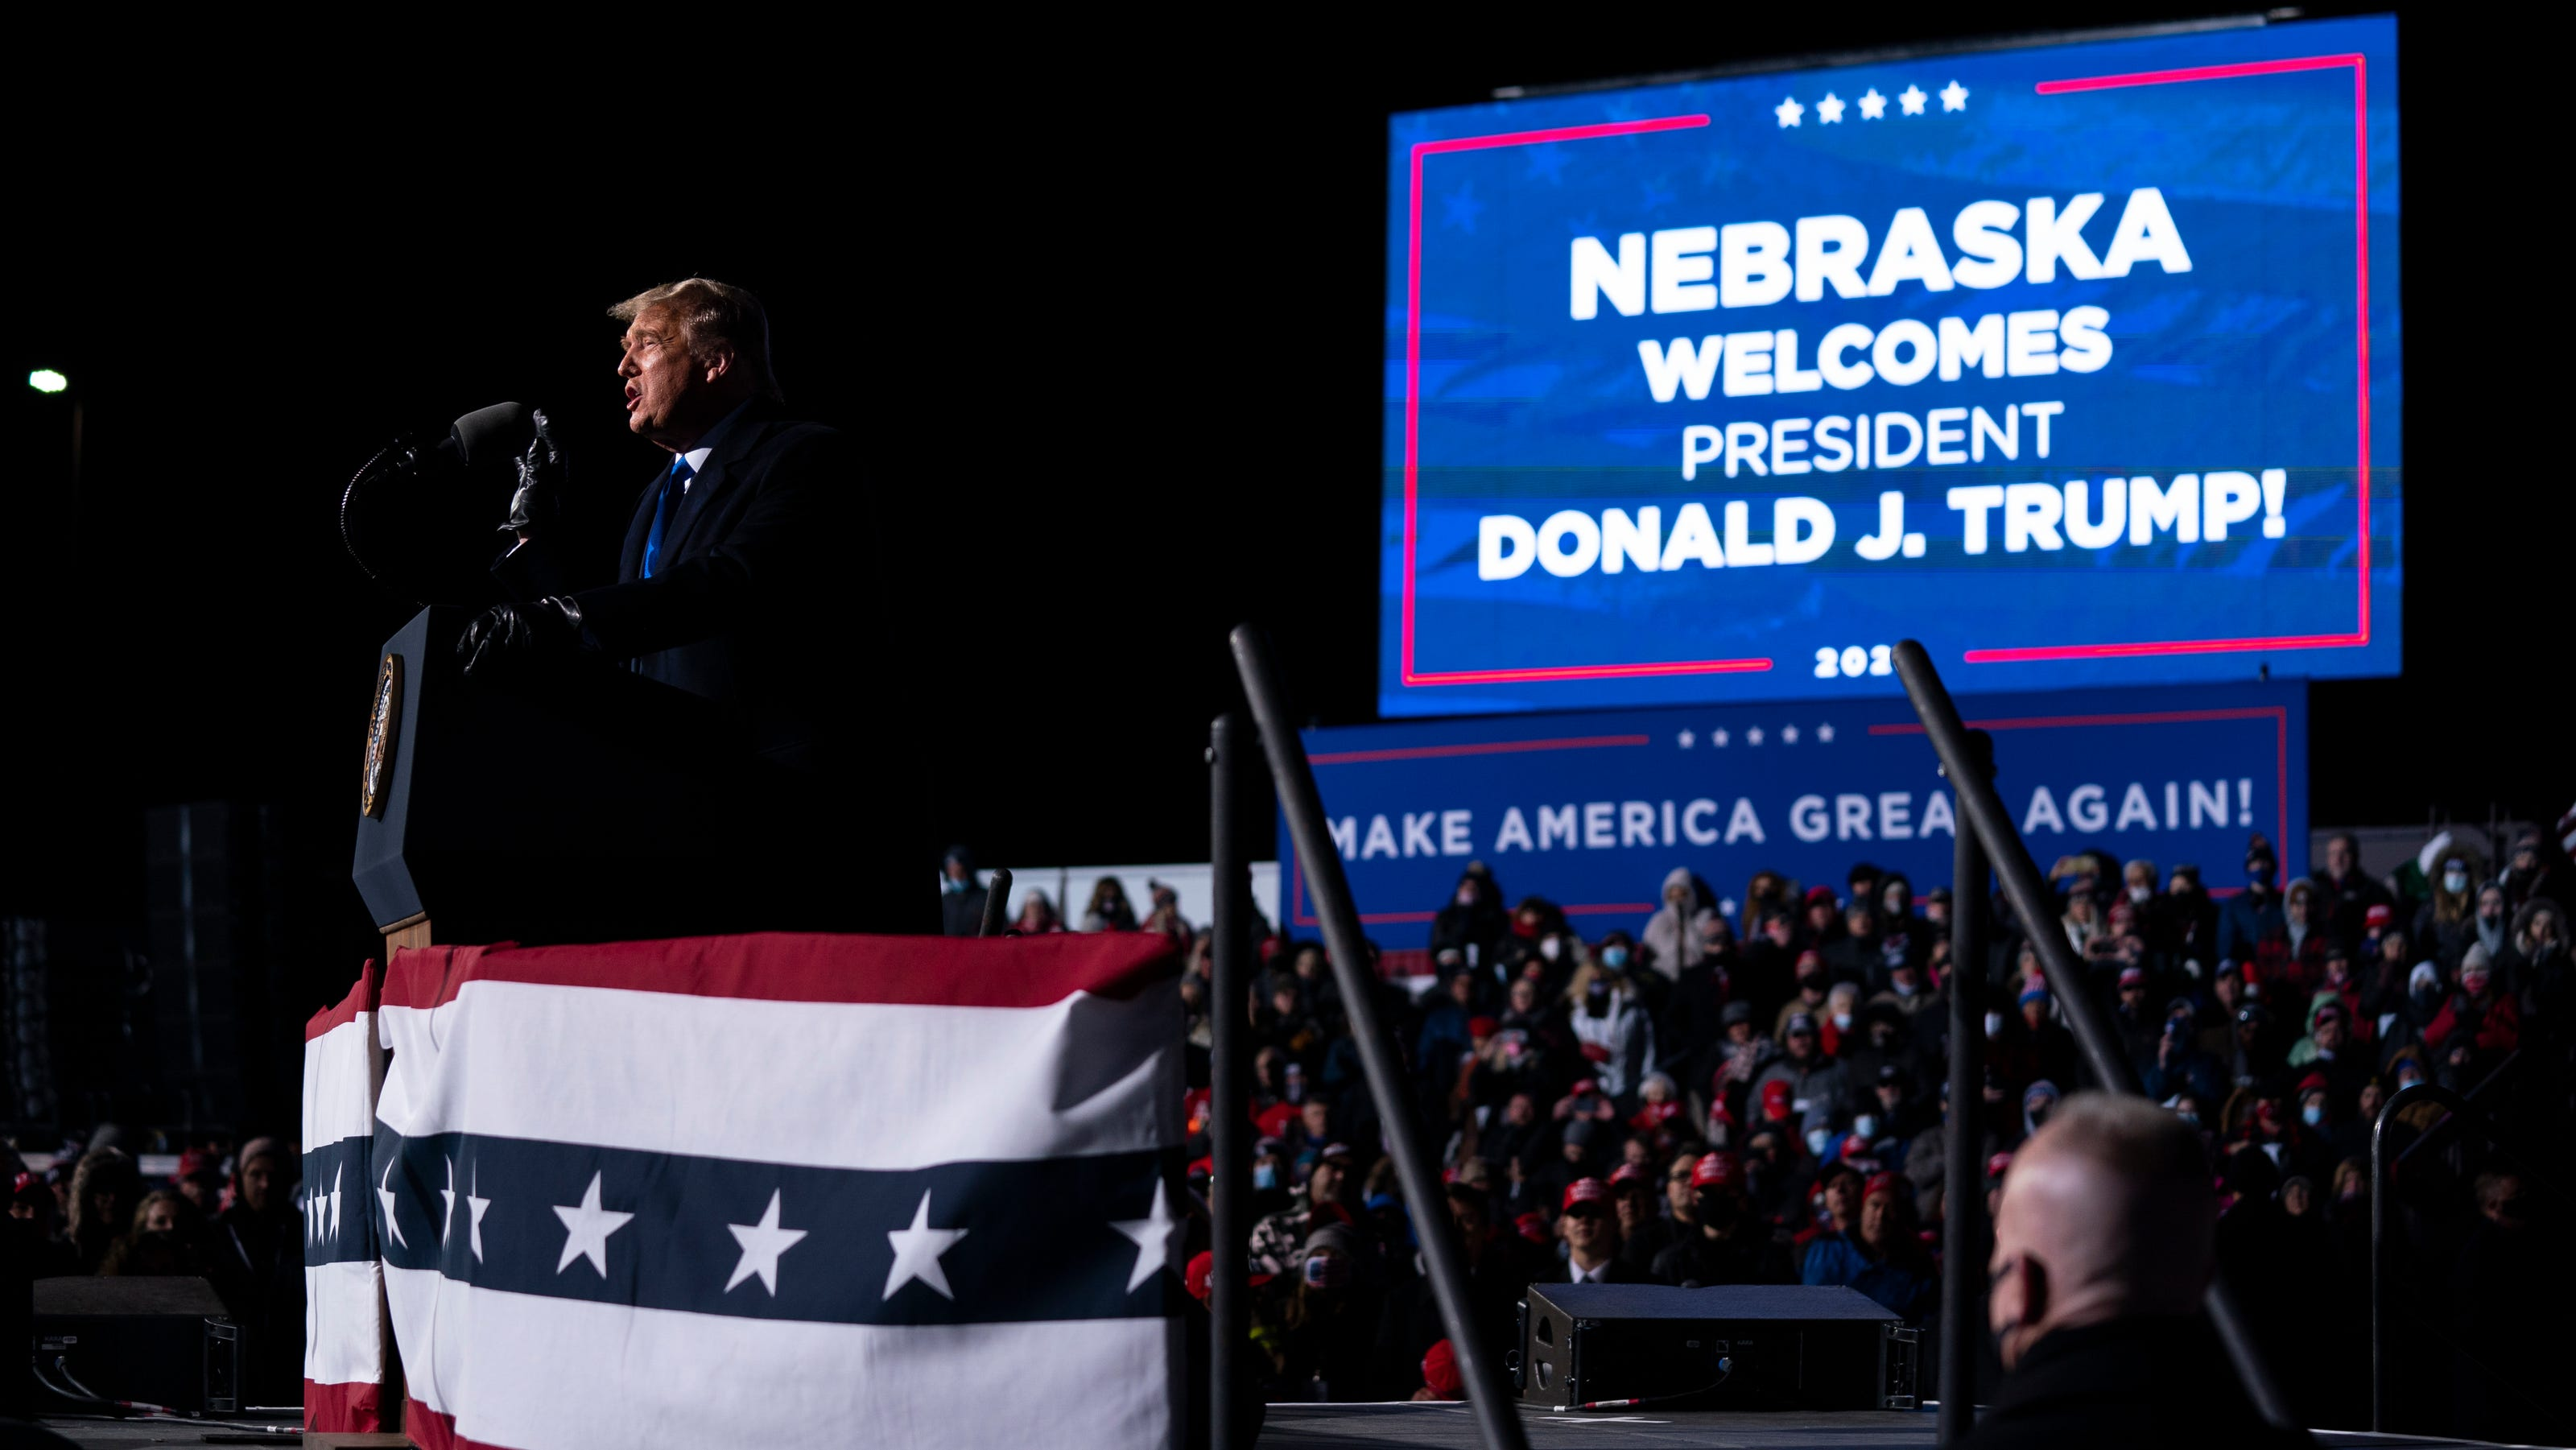 Supporters stranded hours after Trump's Omaha rally ends